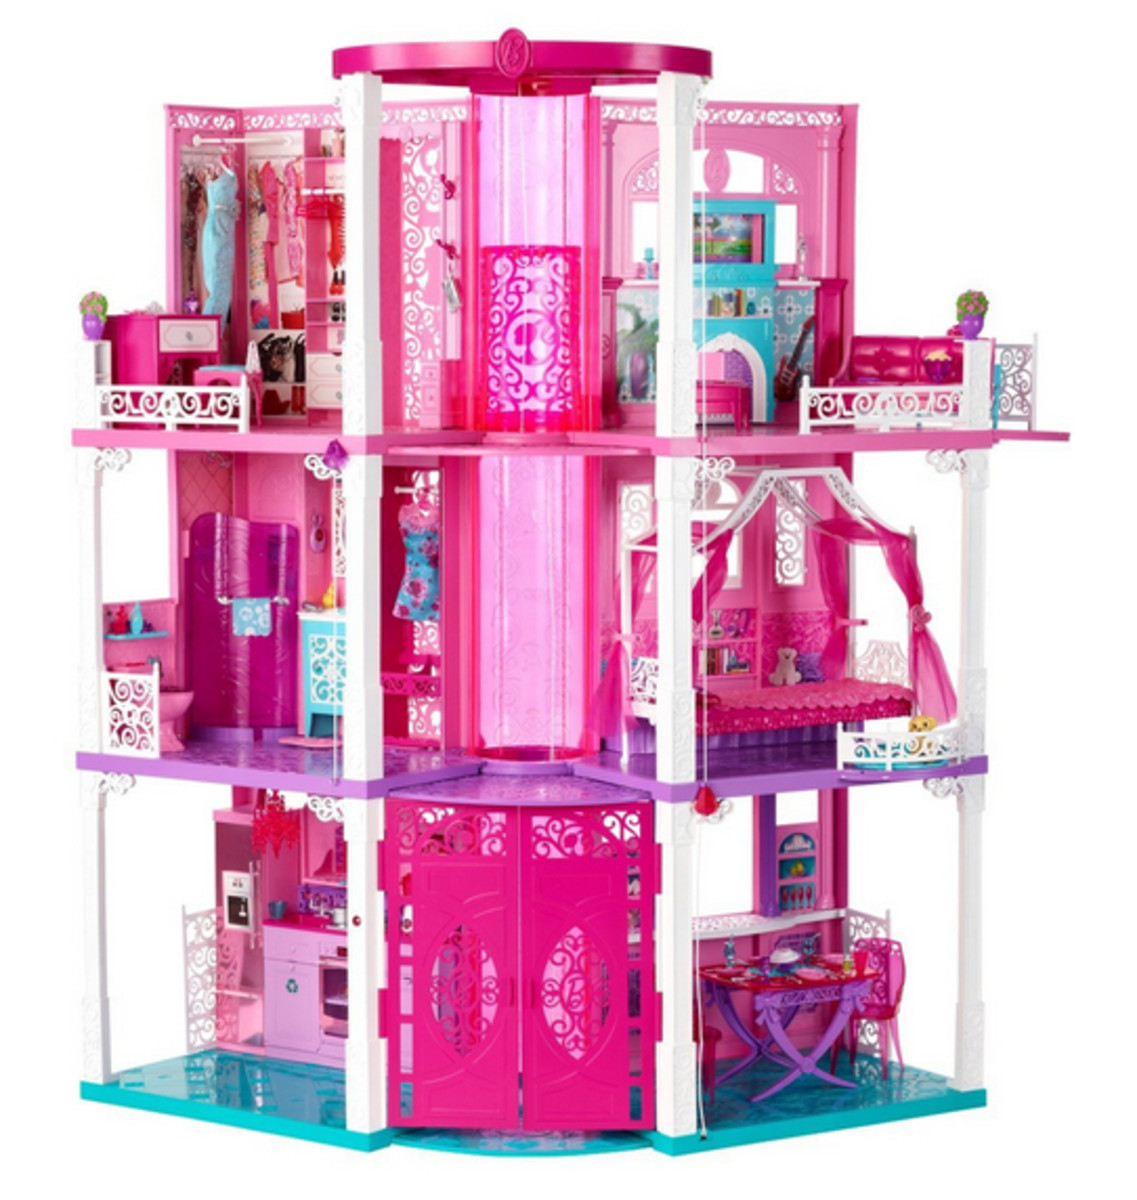 Barbie Fashionista Doll House with friends